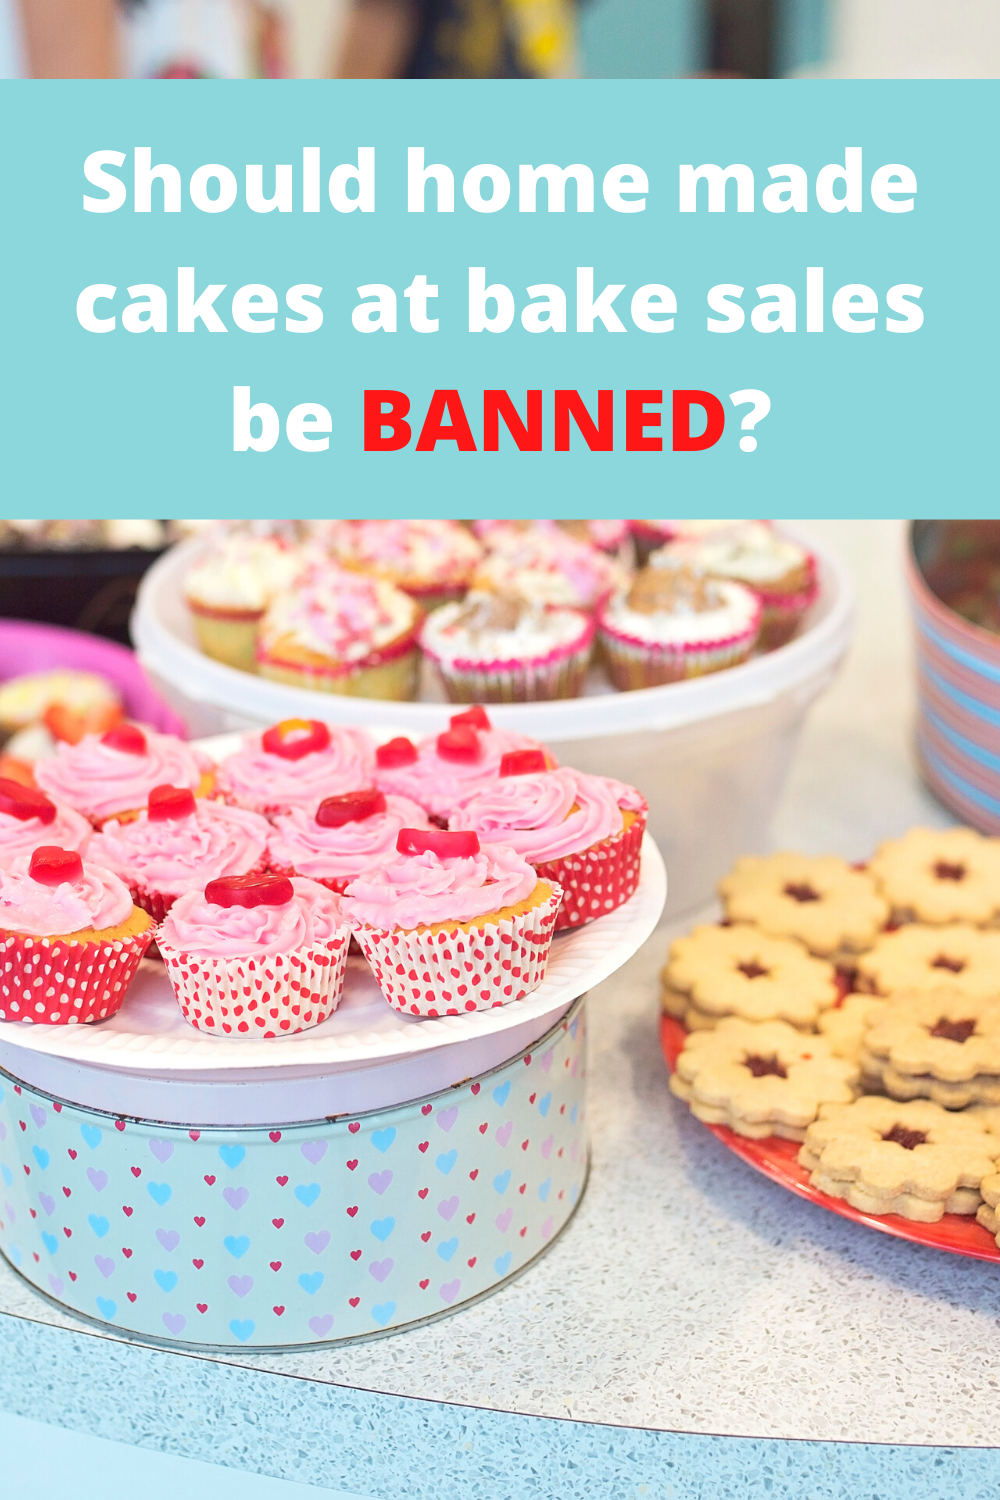 Should home made cakes at bake sales be banned? Is food hygiene at home a problem? How do people with allergies cope with bake sales? Find out what people think.